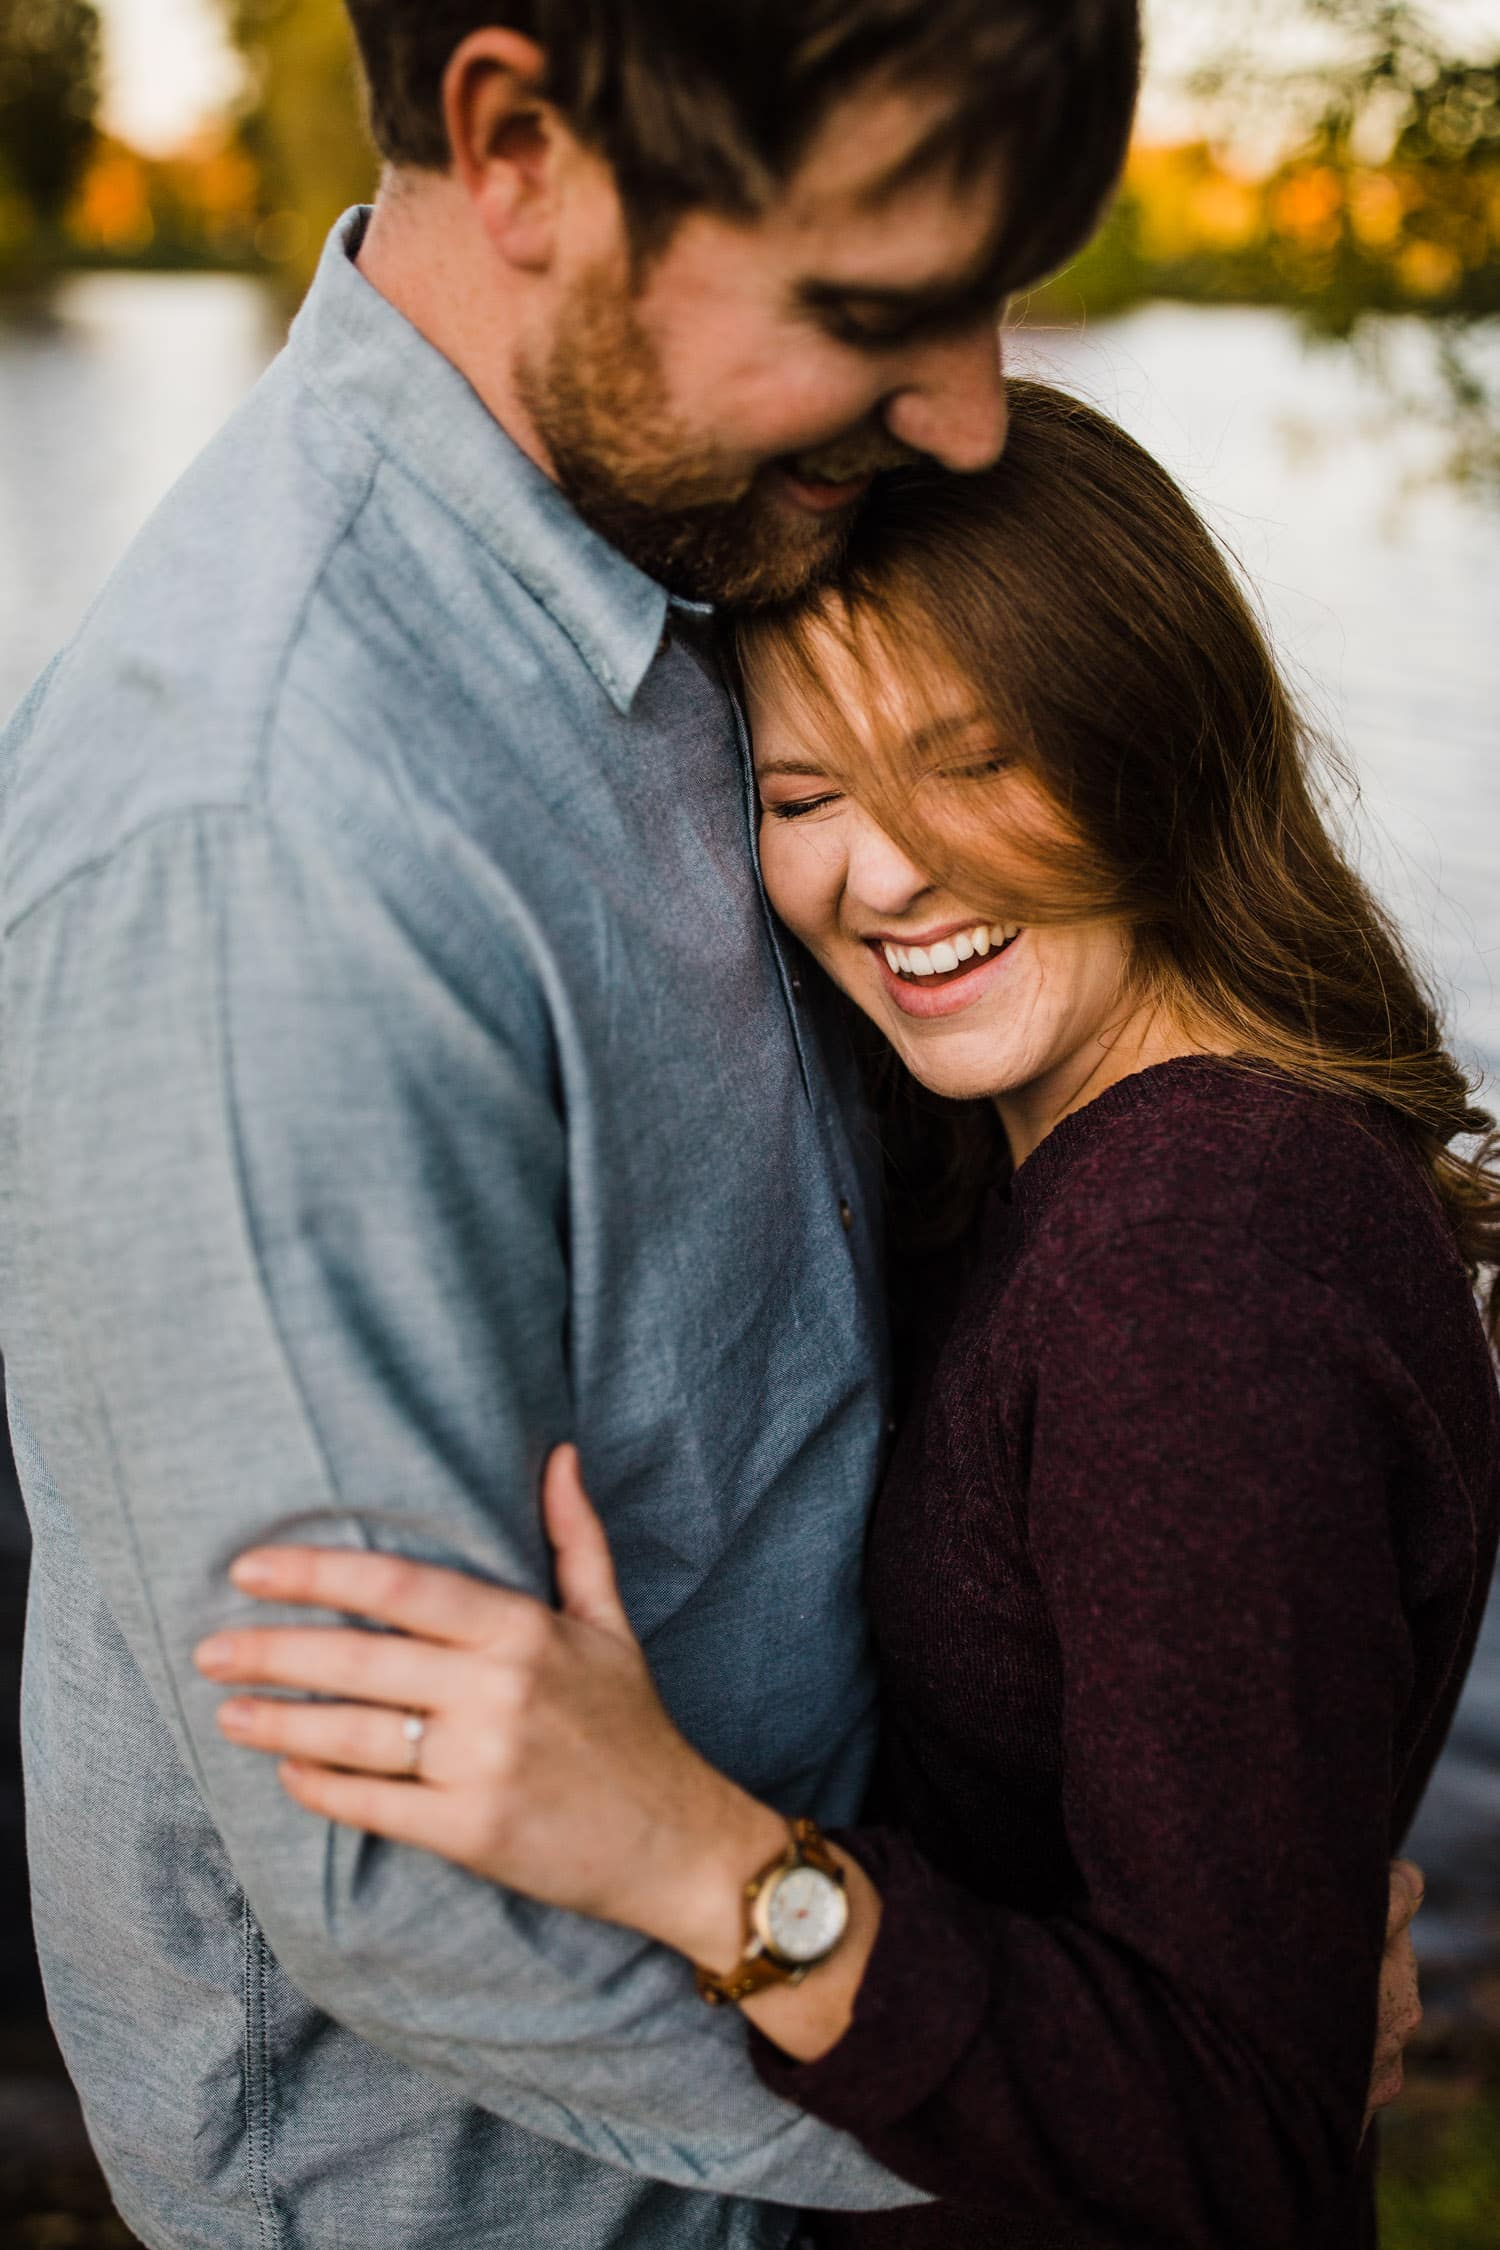 couple cuddle and laugh together outside - ottawa engagement photographer